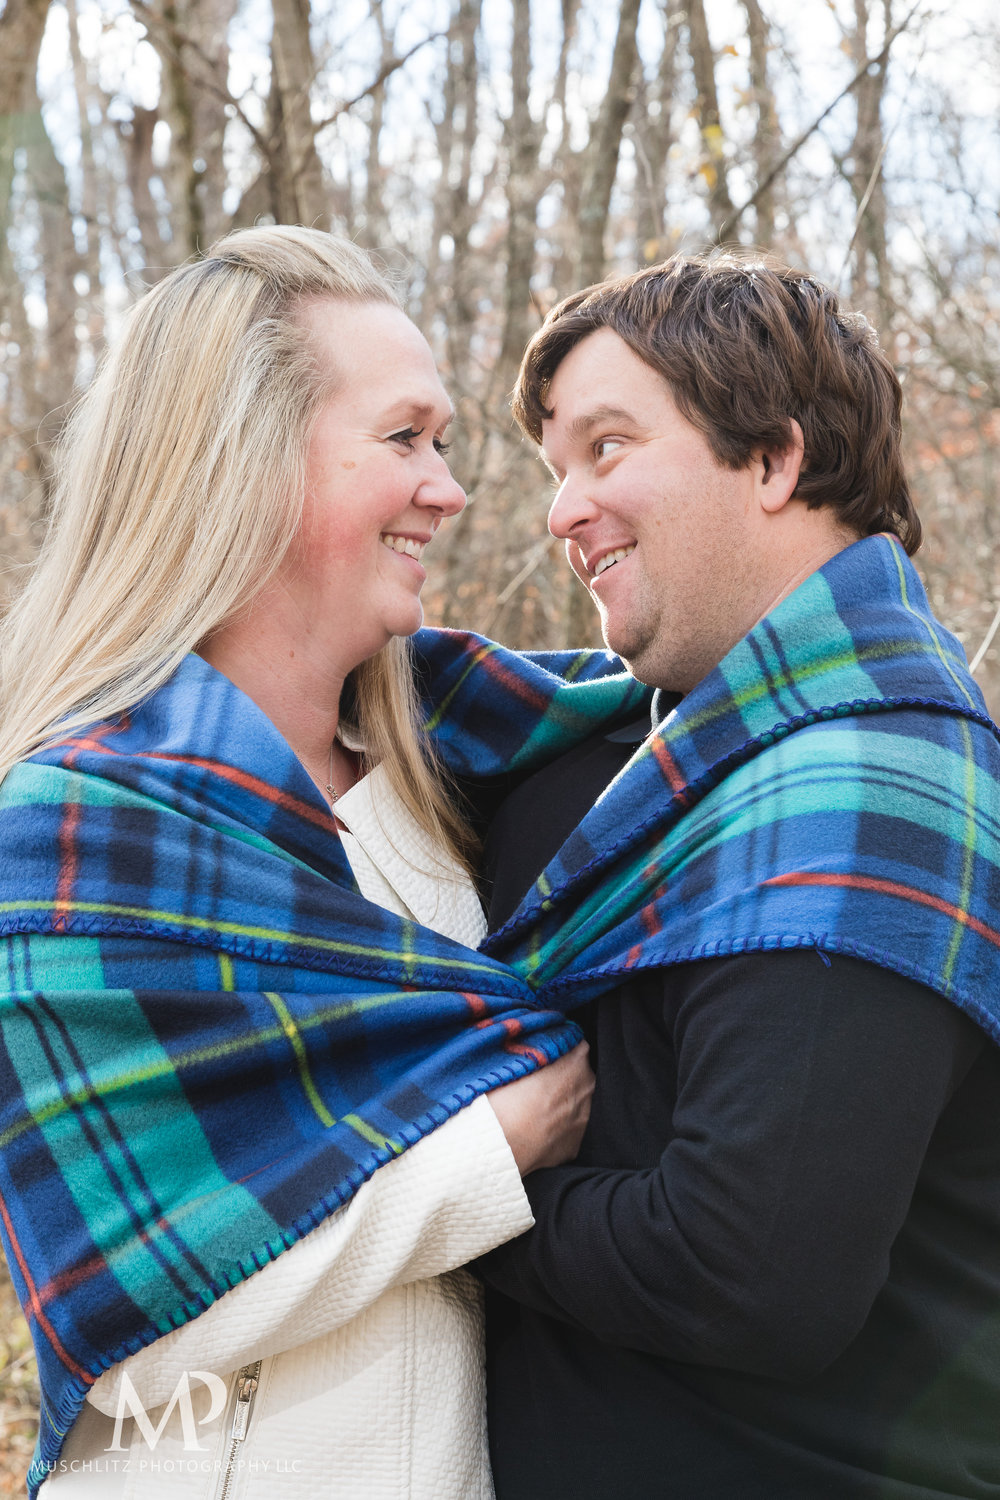 Gahanna-Columbus-Ohio-Winter-Engagement-Portrait-Photographer-Outdoors-muschlitz-photography025.JPG